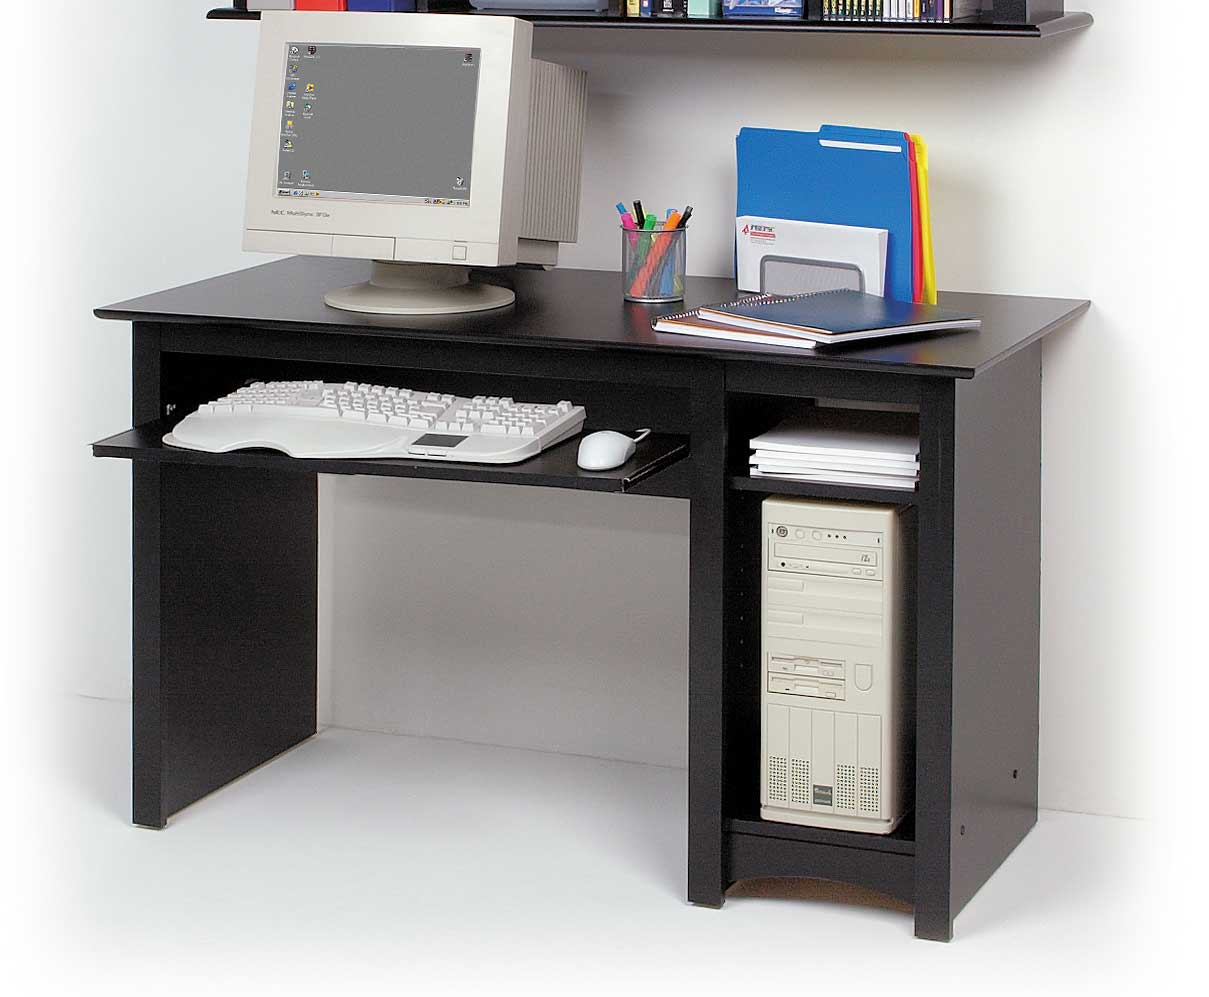 Space Saving Home fice Ideas with IKEA Desks for Small